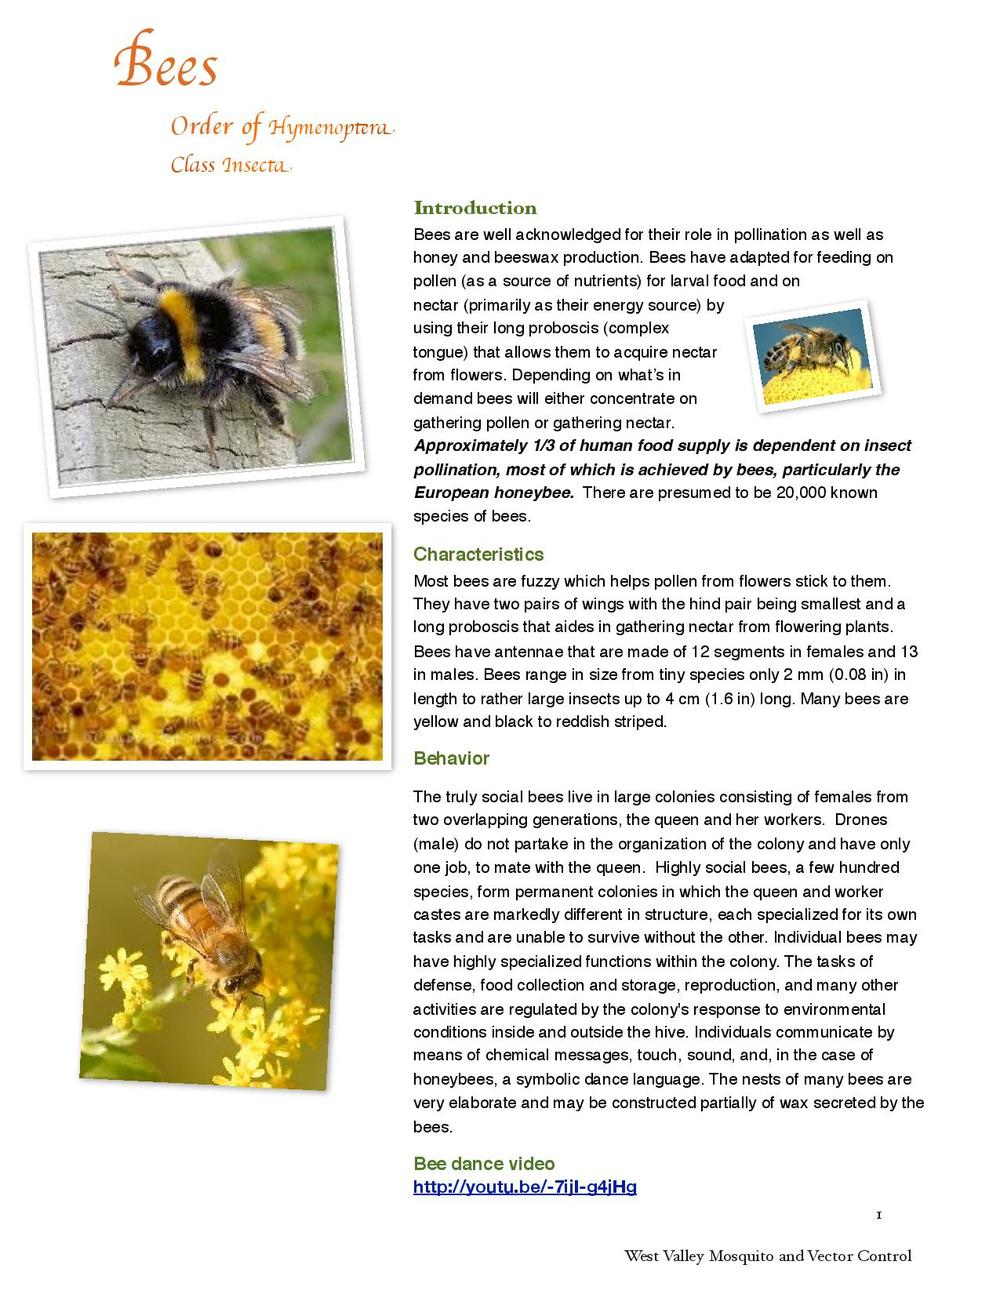 Bees-page-001.jpg